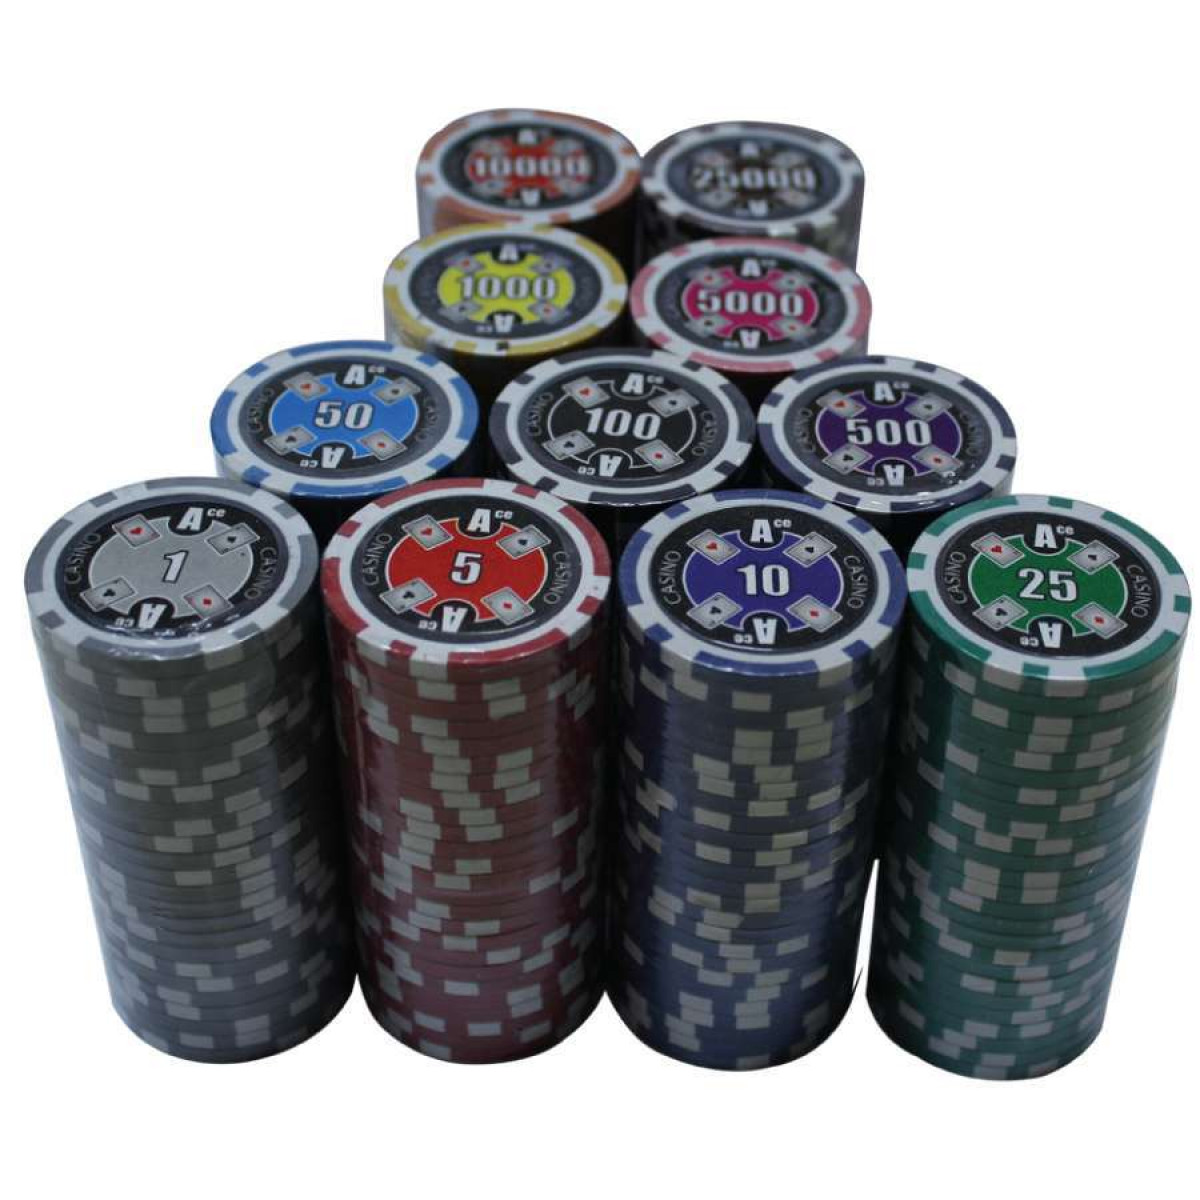 Casino aces poker chips crown towers casino